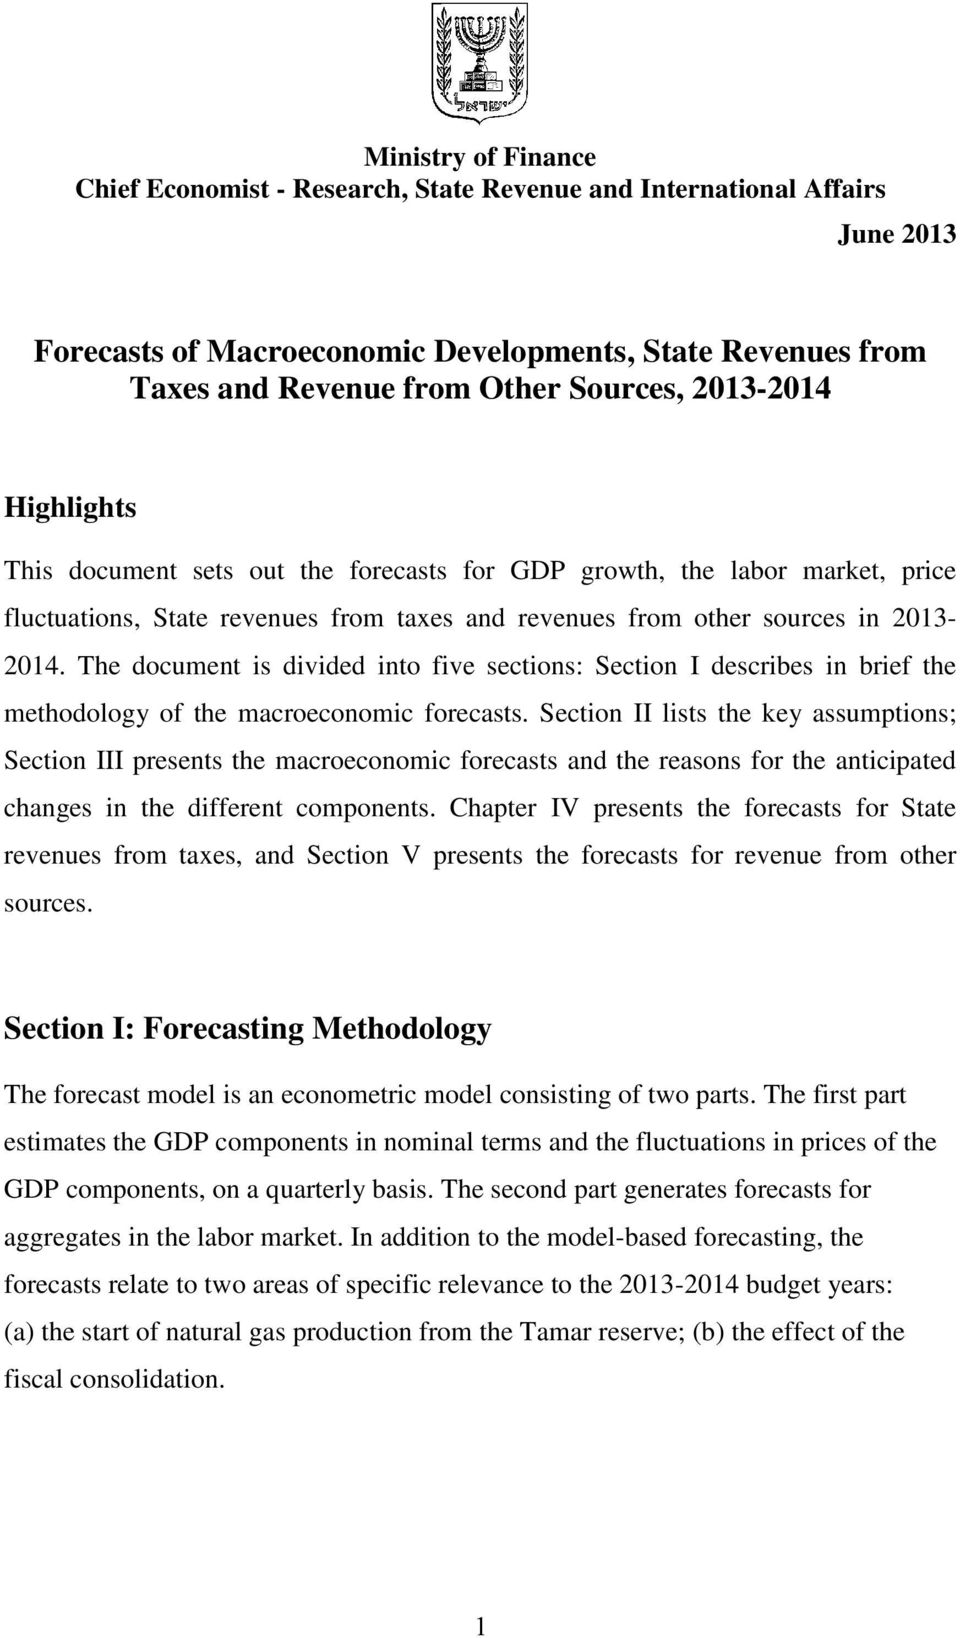 The document is divided into five sections: Section I describes in brief the methodology of the macroeconomic forecasts.